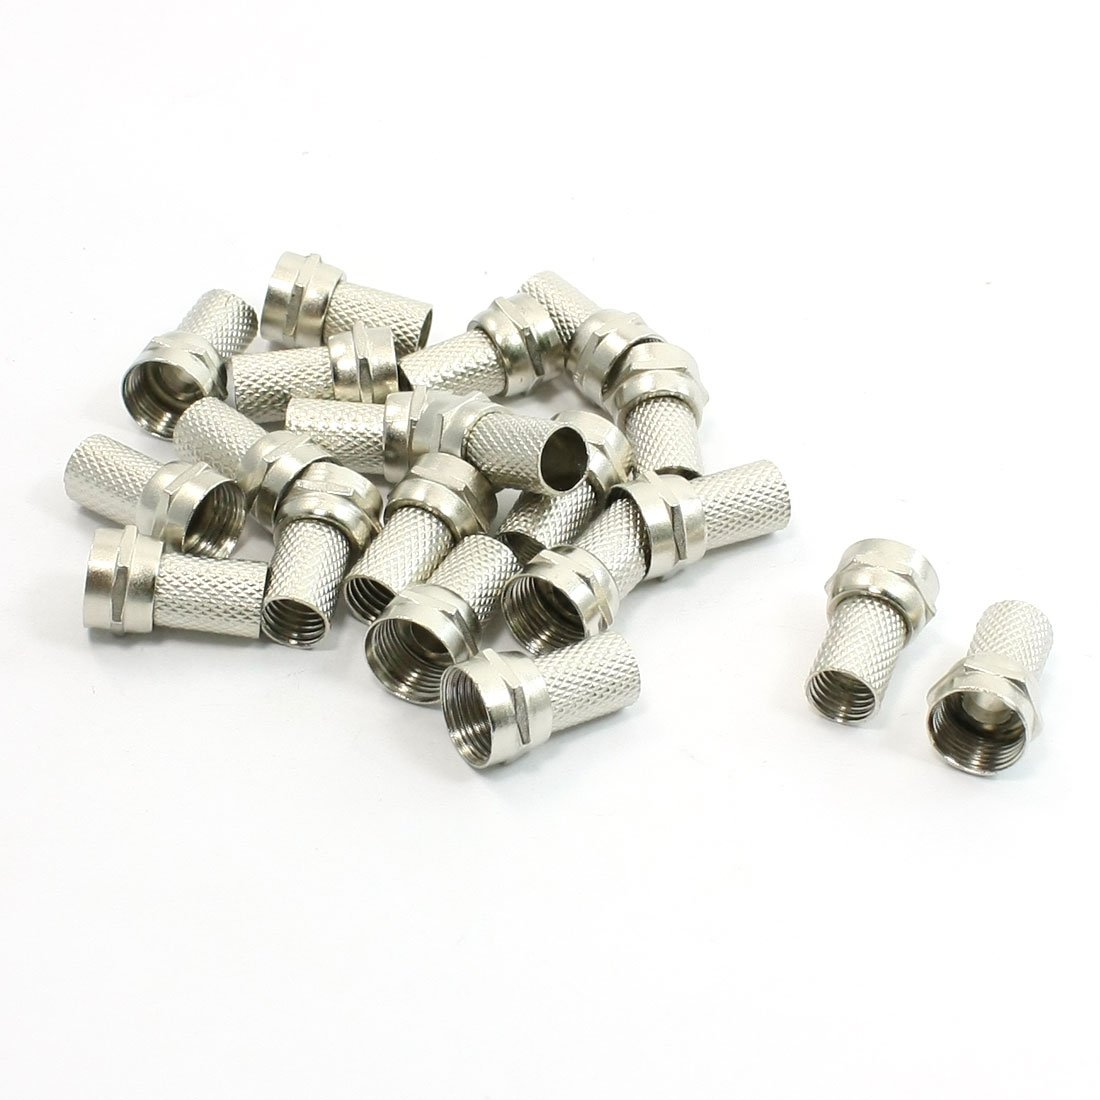 20Pcs CCTV RG6 F-Type Twist-On Coax Coaxial Cable RF Connector Male(China (Mainland))